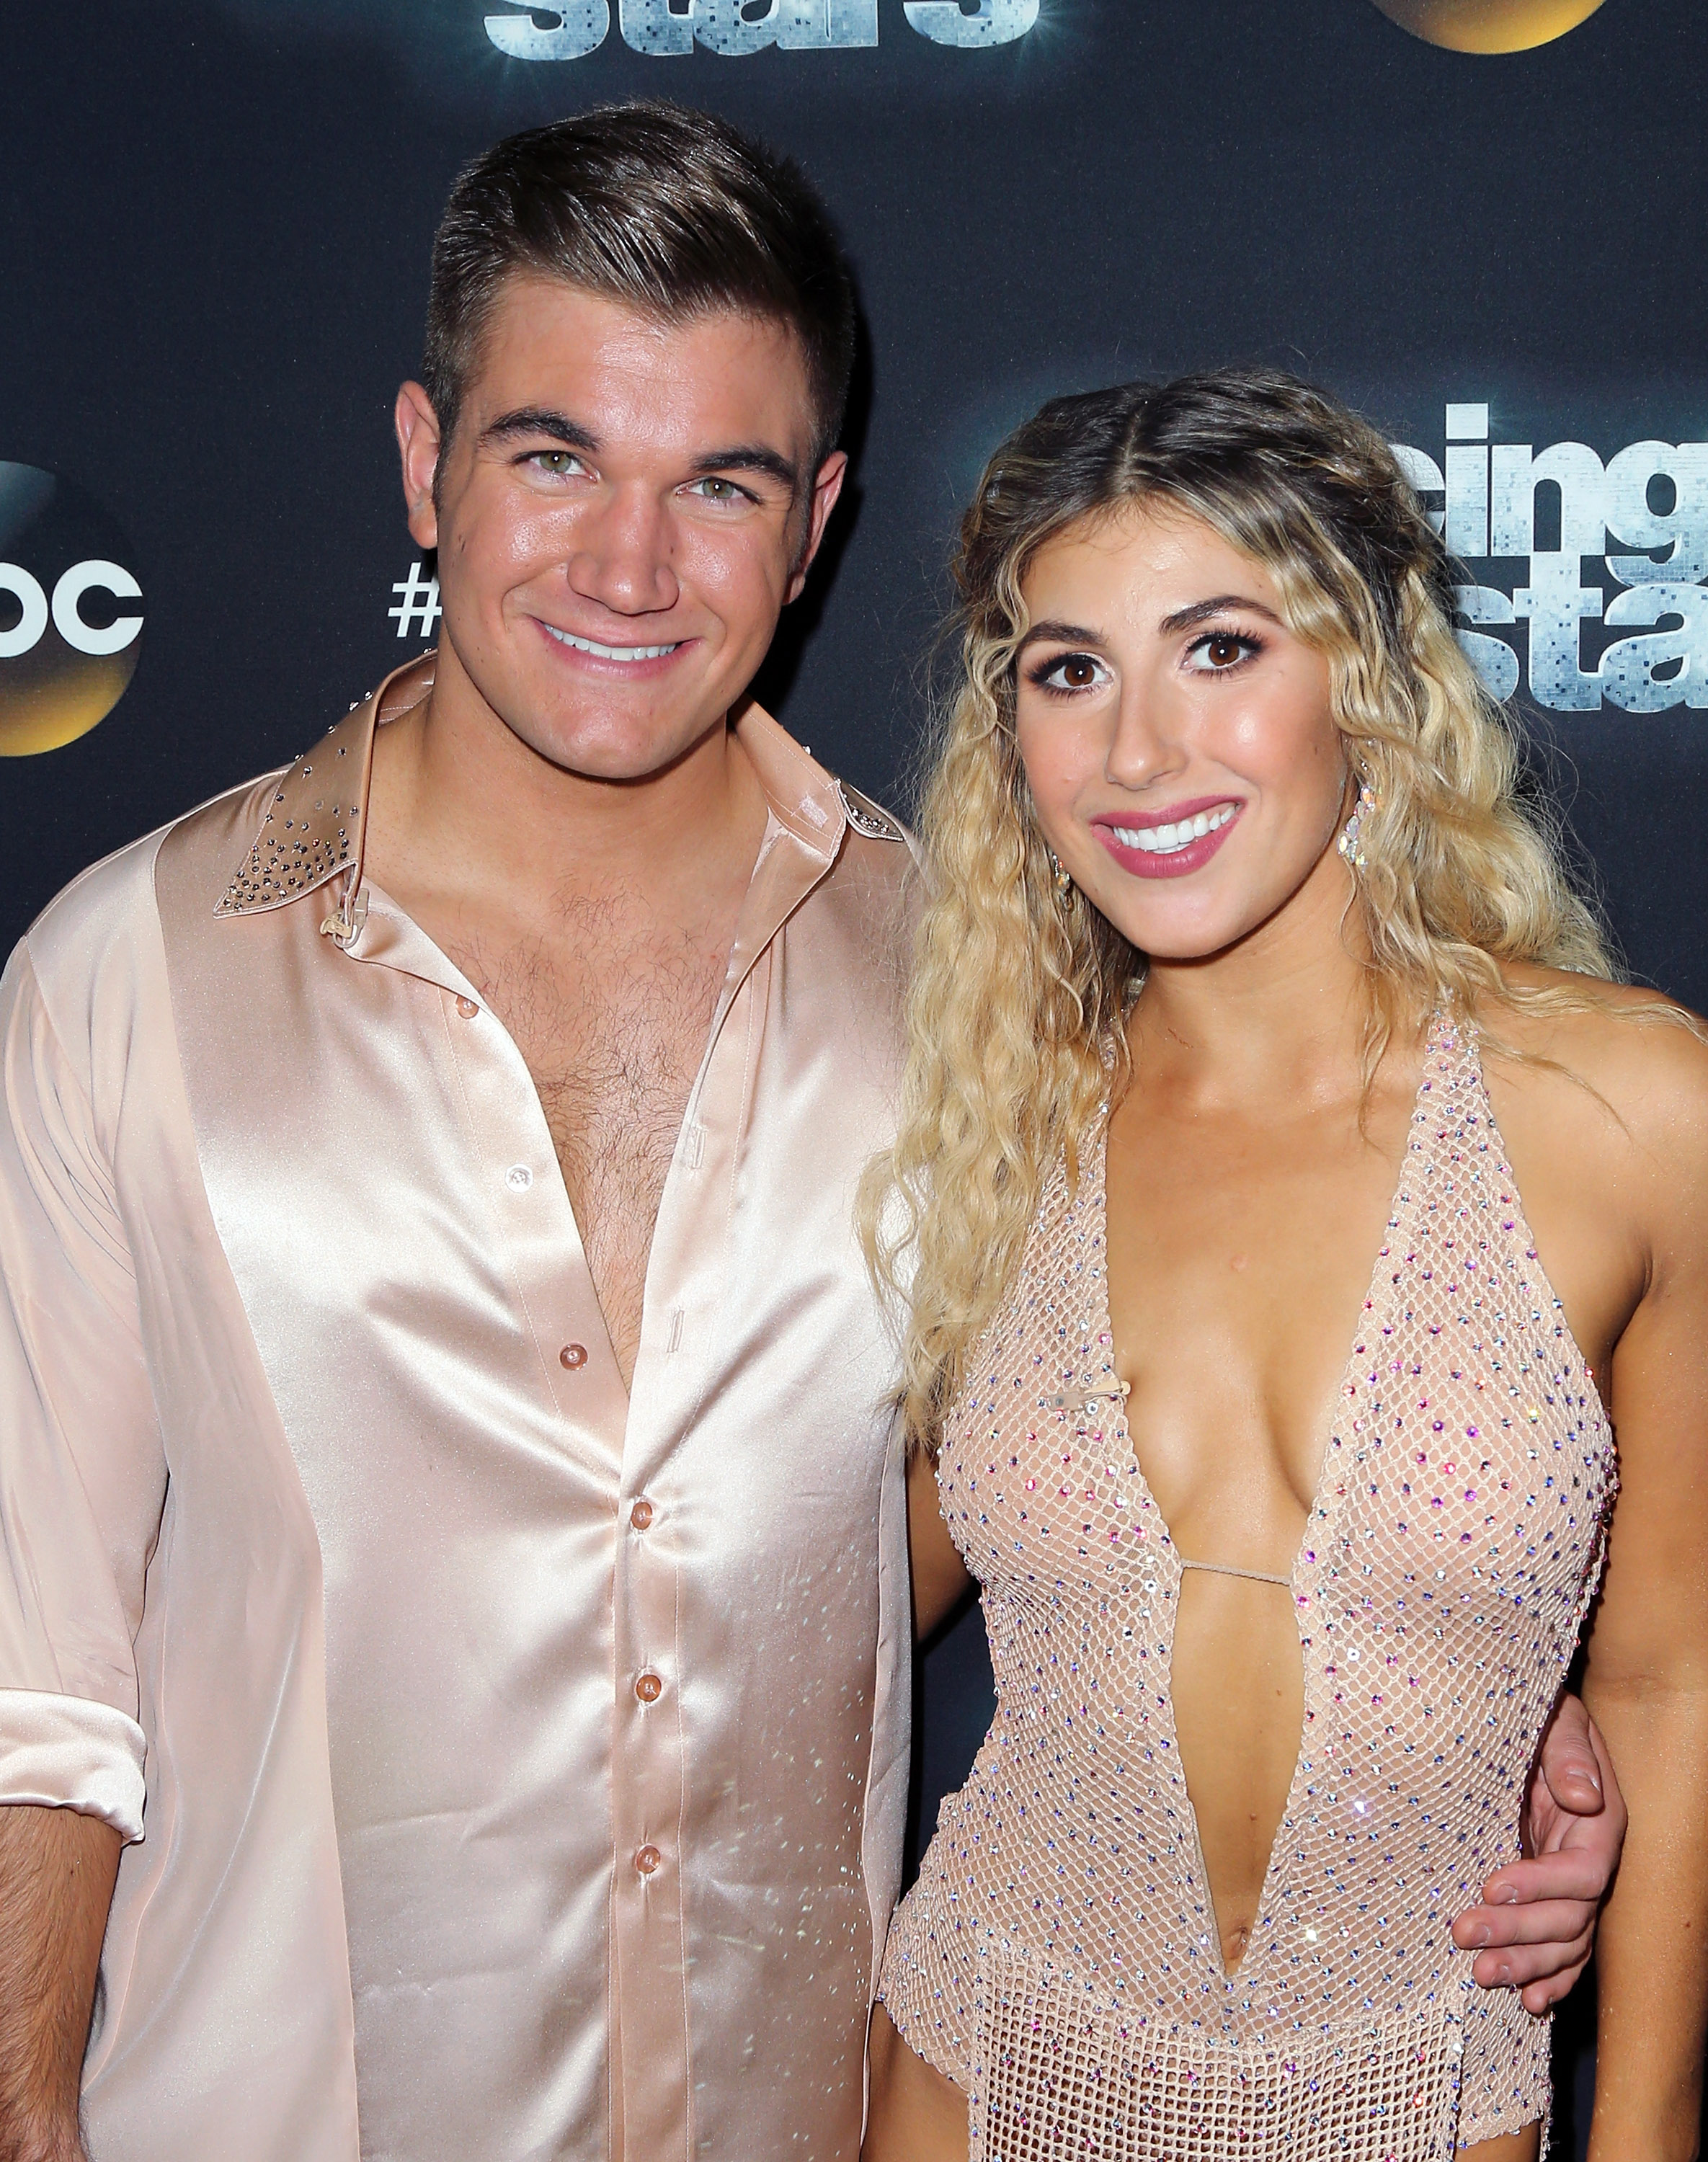 Dancing With the Stars: Alek Skarlatos talks about his crush on Emma Slater | cybertime.ru